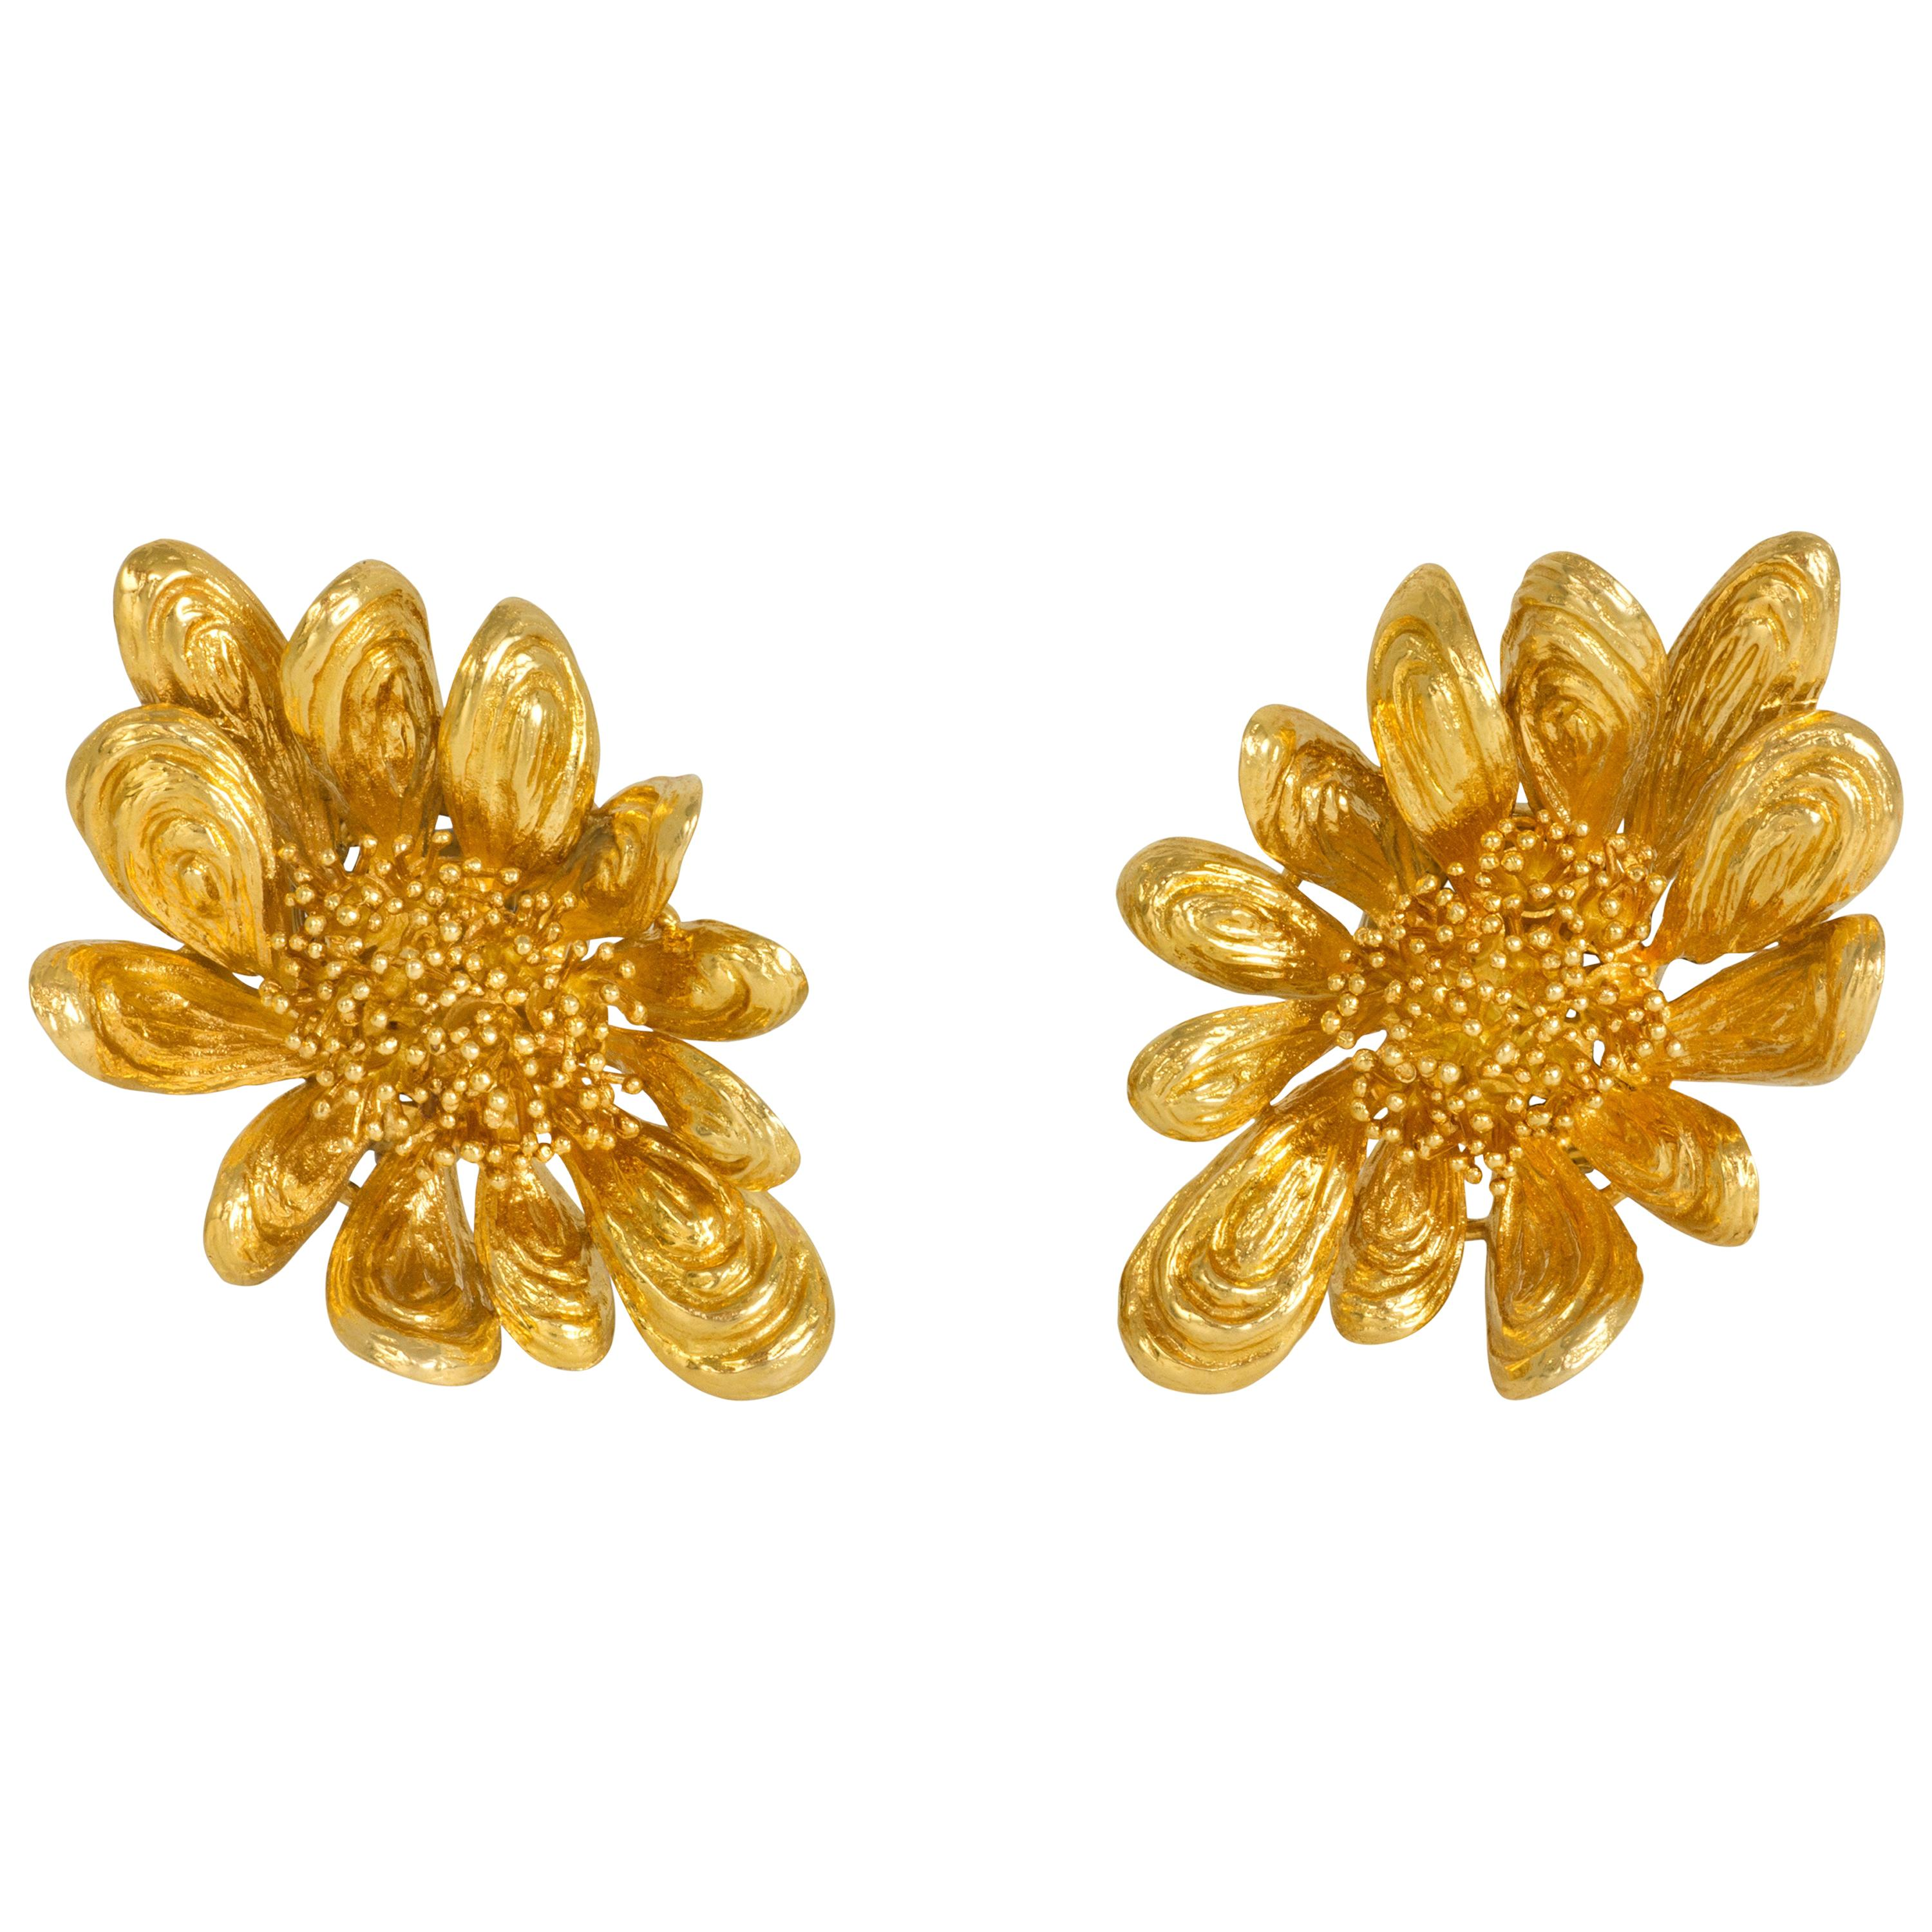 1964 Chaumet Gold Floral Ear Clips